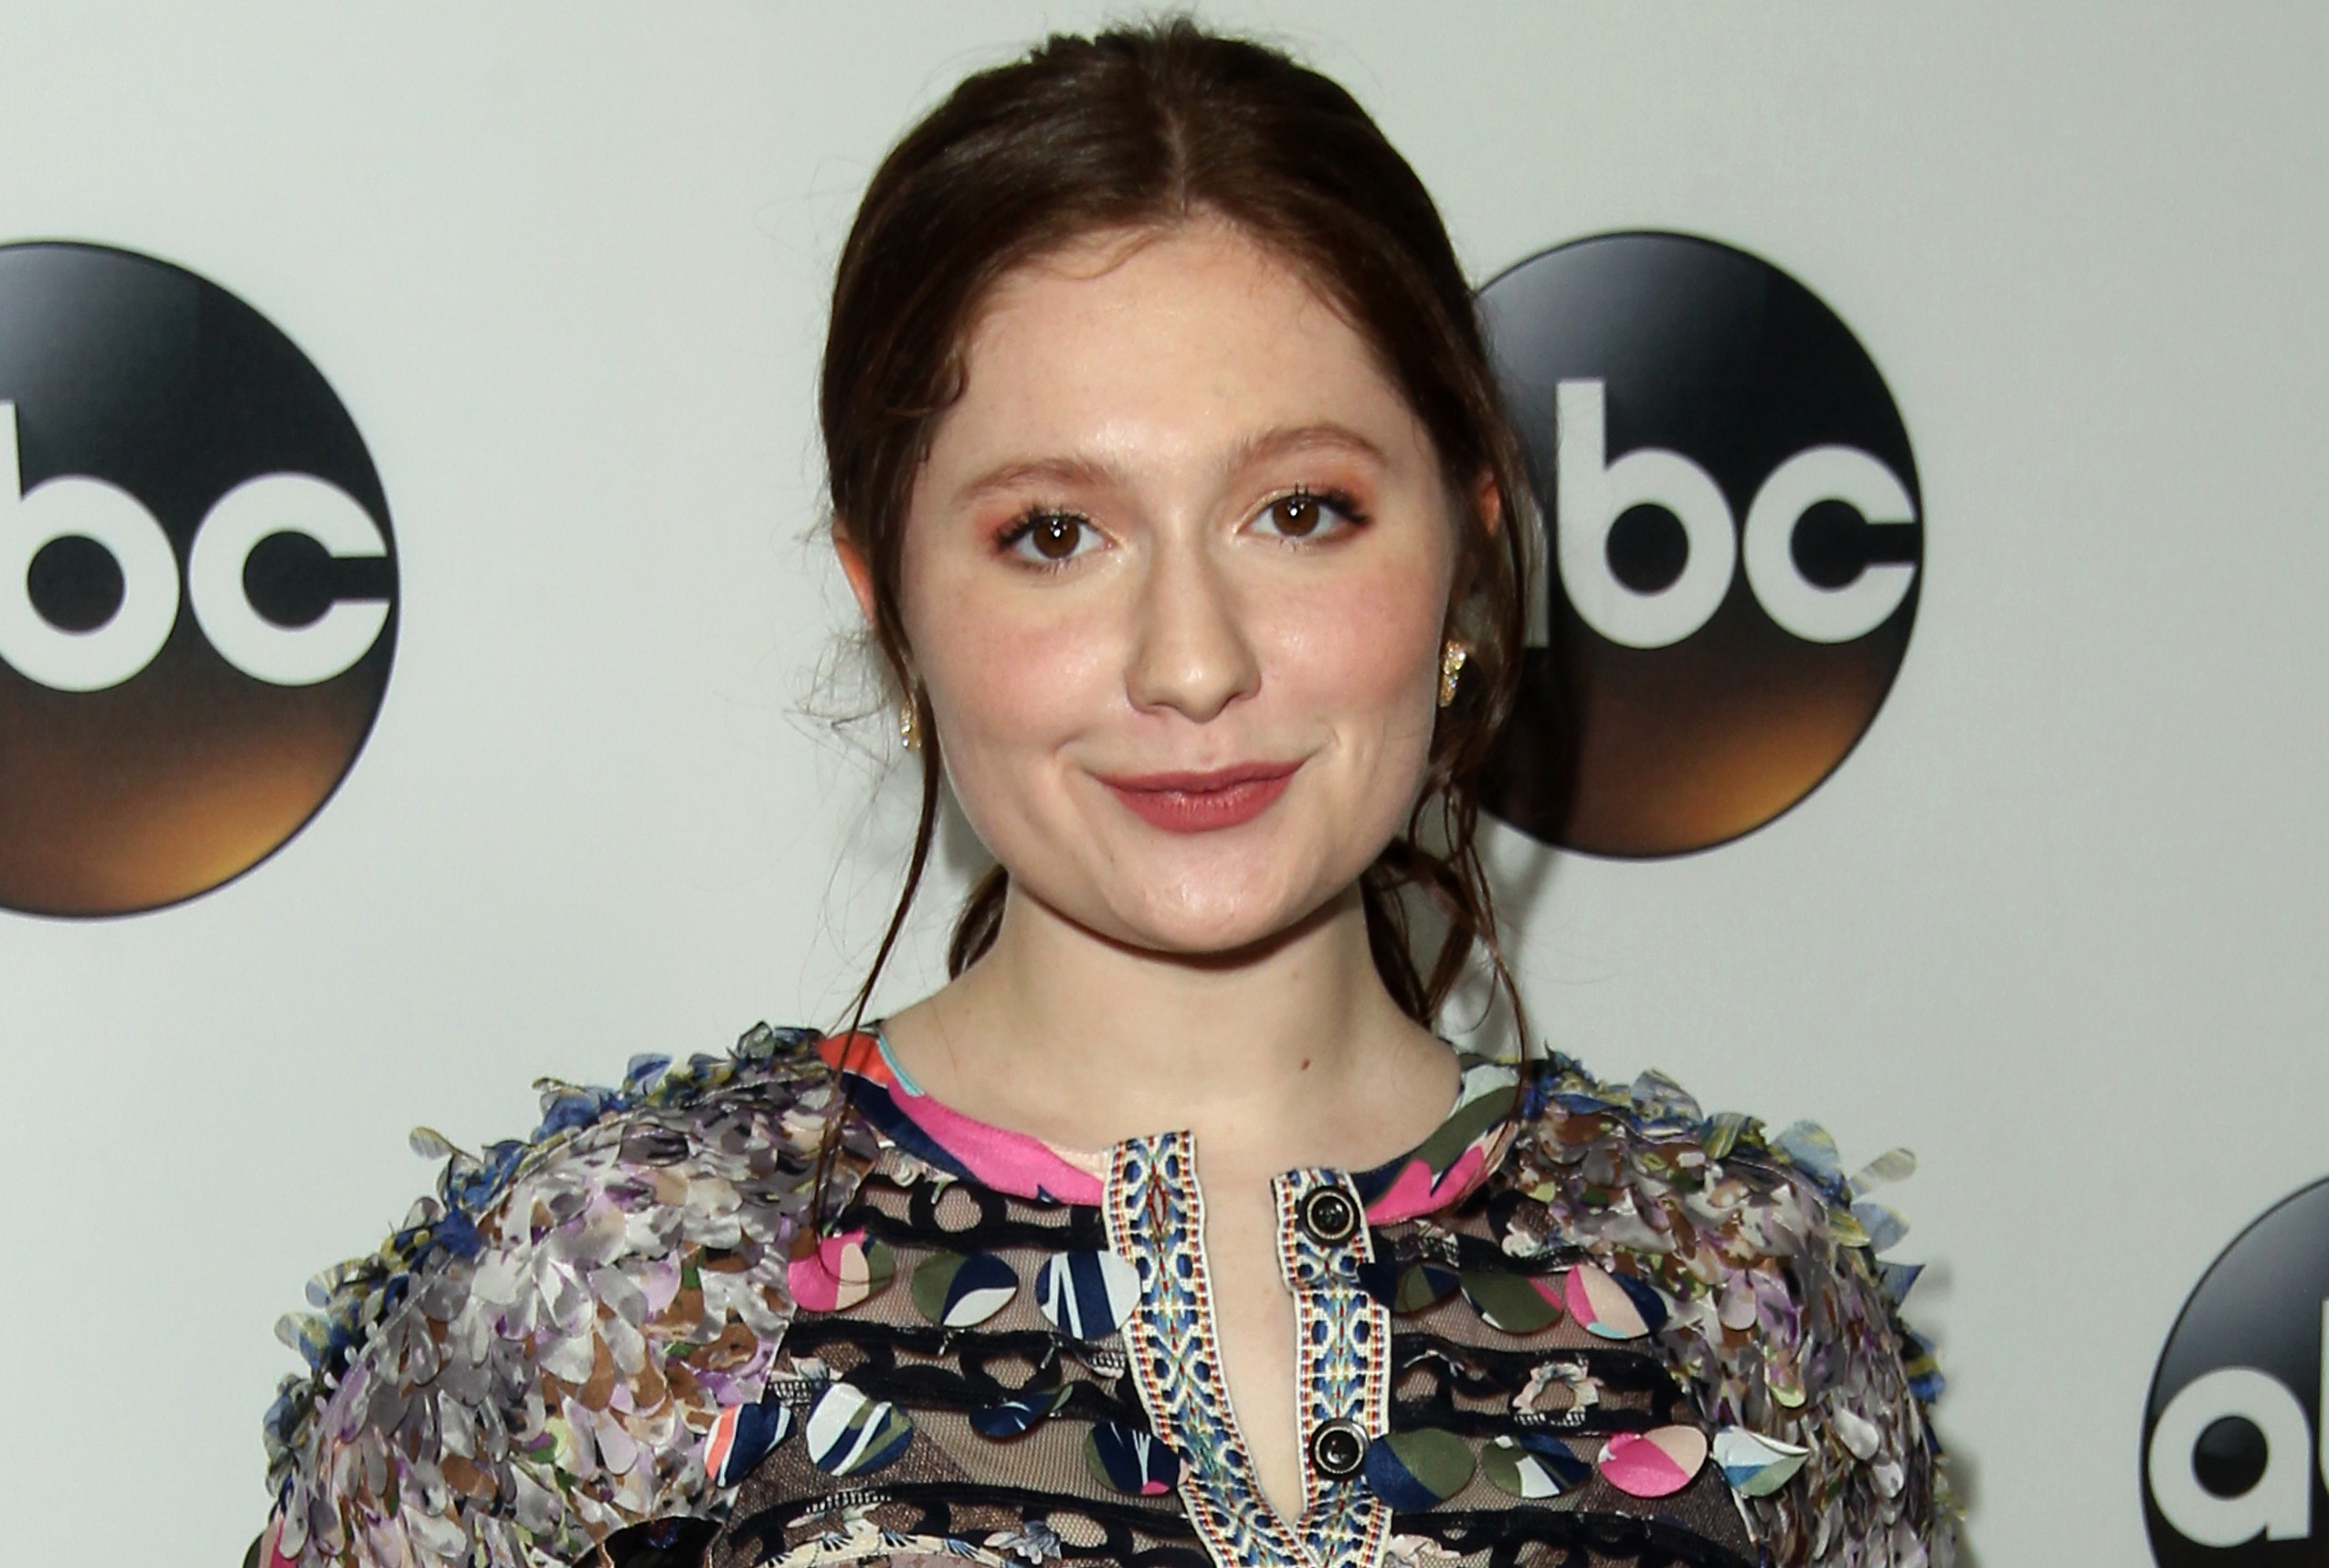 'Roseanne' star Emma Kenney enters treatment after 'illegal' behavior